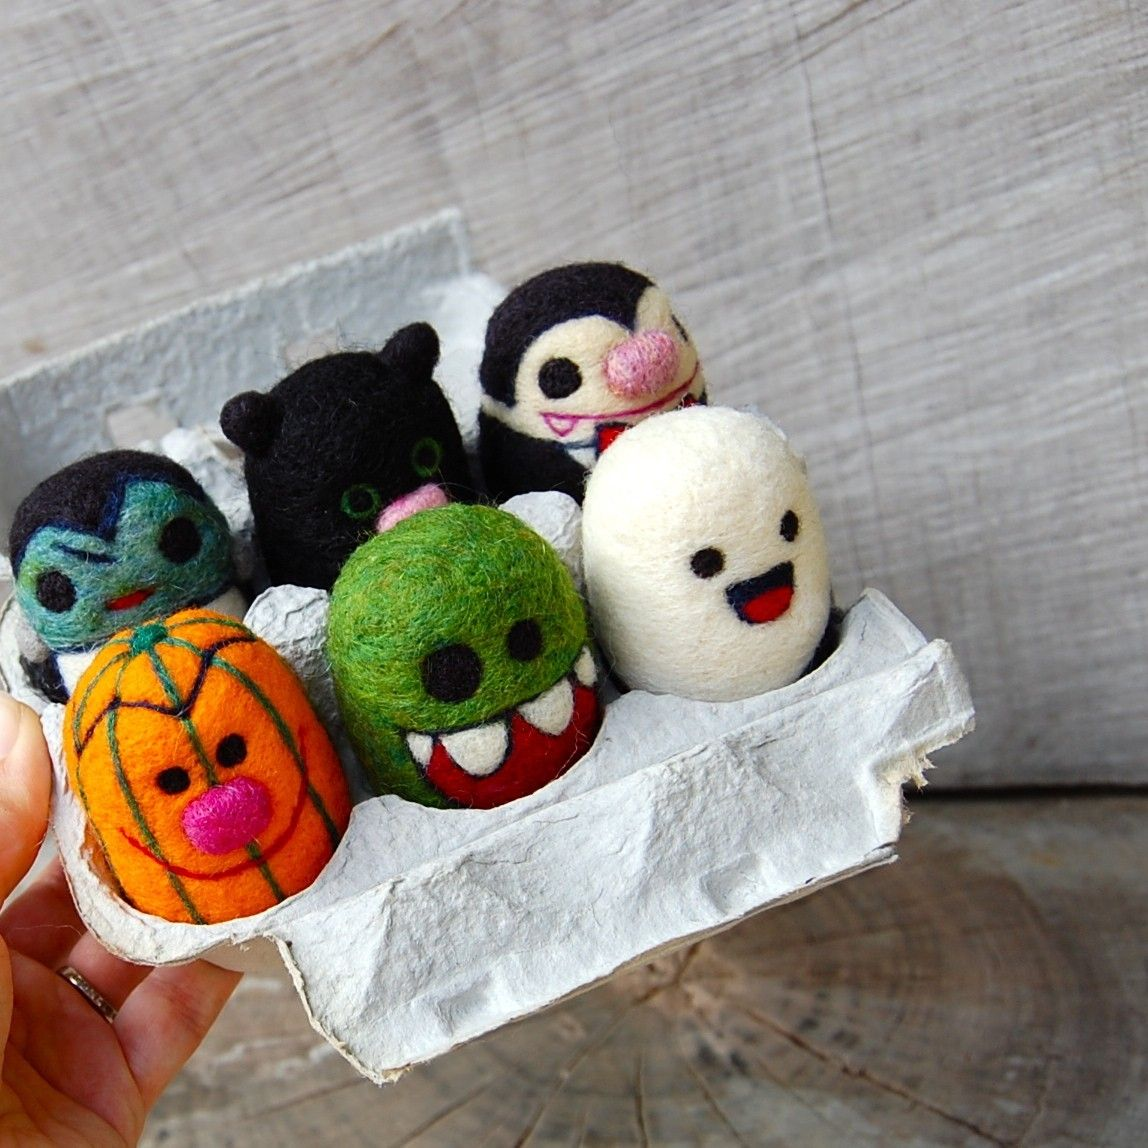 Egg Box needle felted halloween play set by Asher Jasper